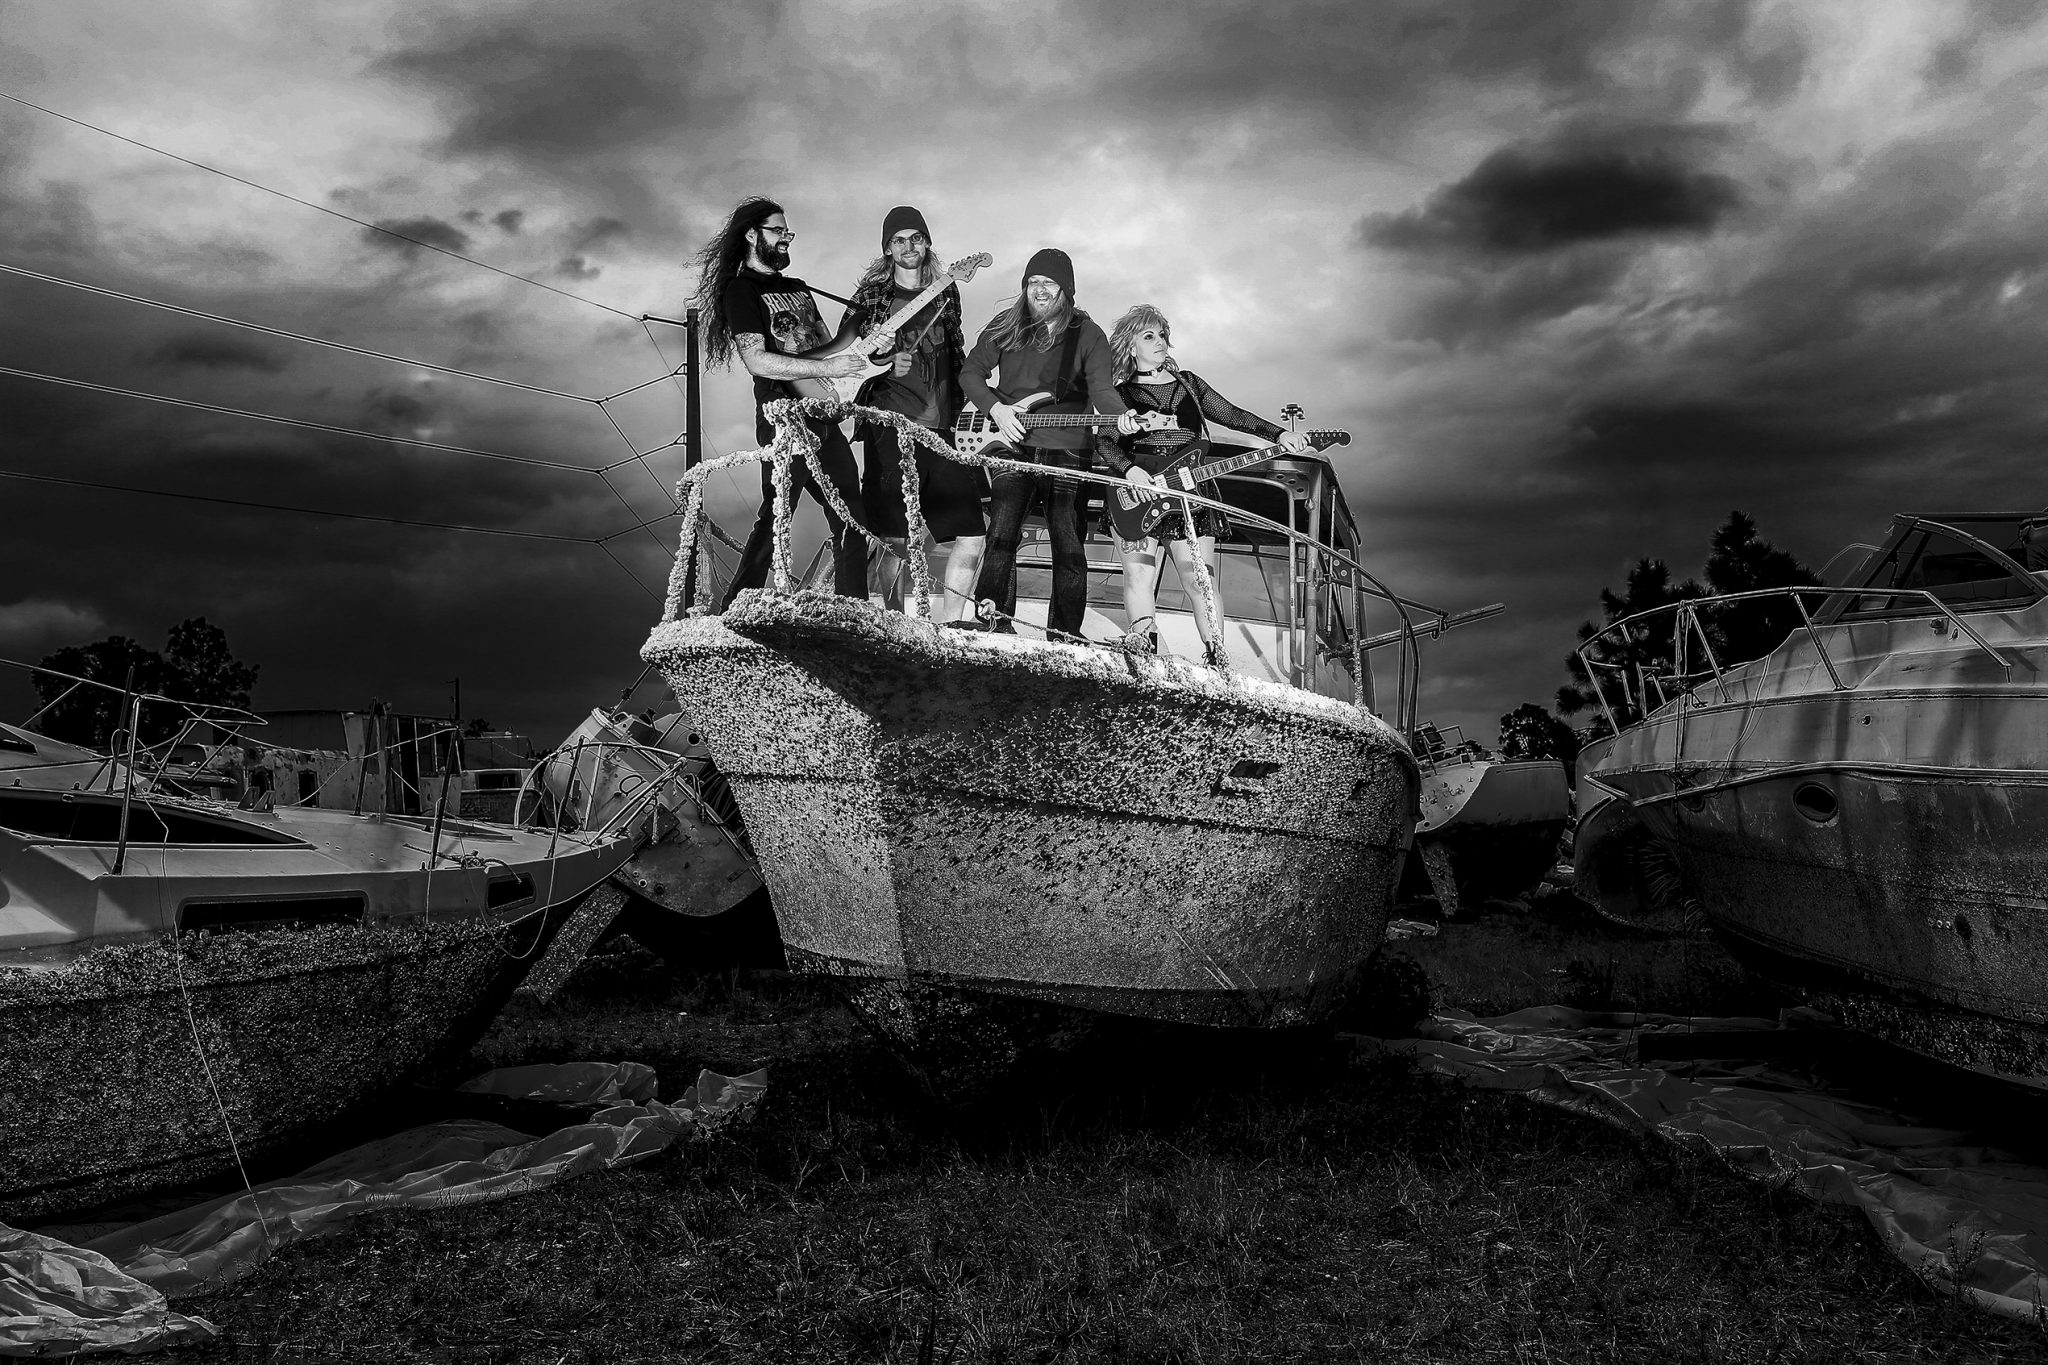 band on a boat during a storm the young dead jesi Cason photography